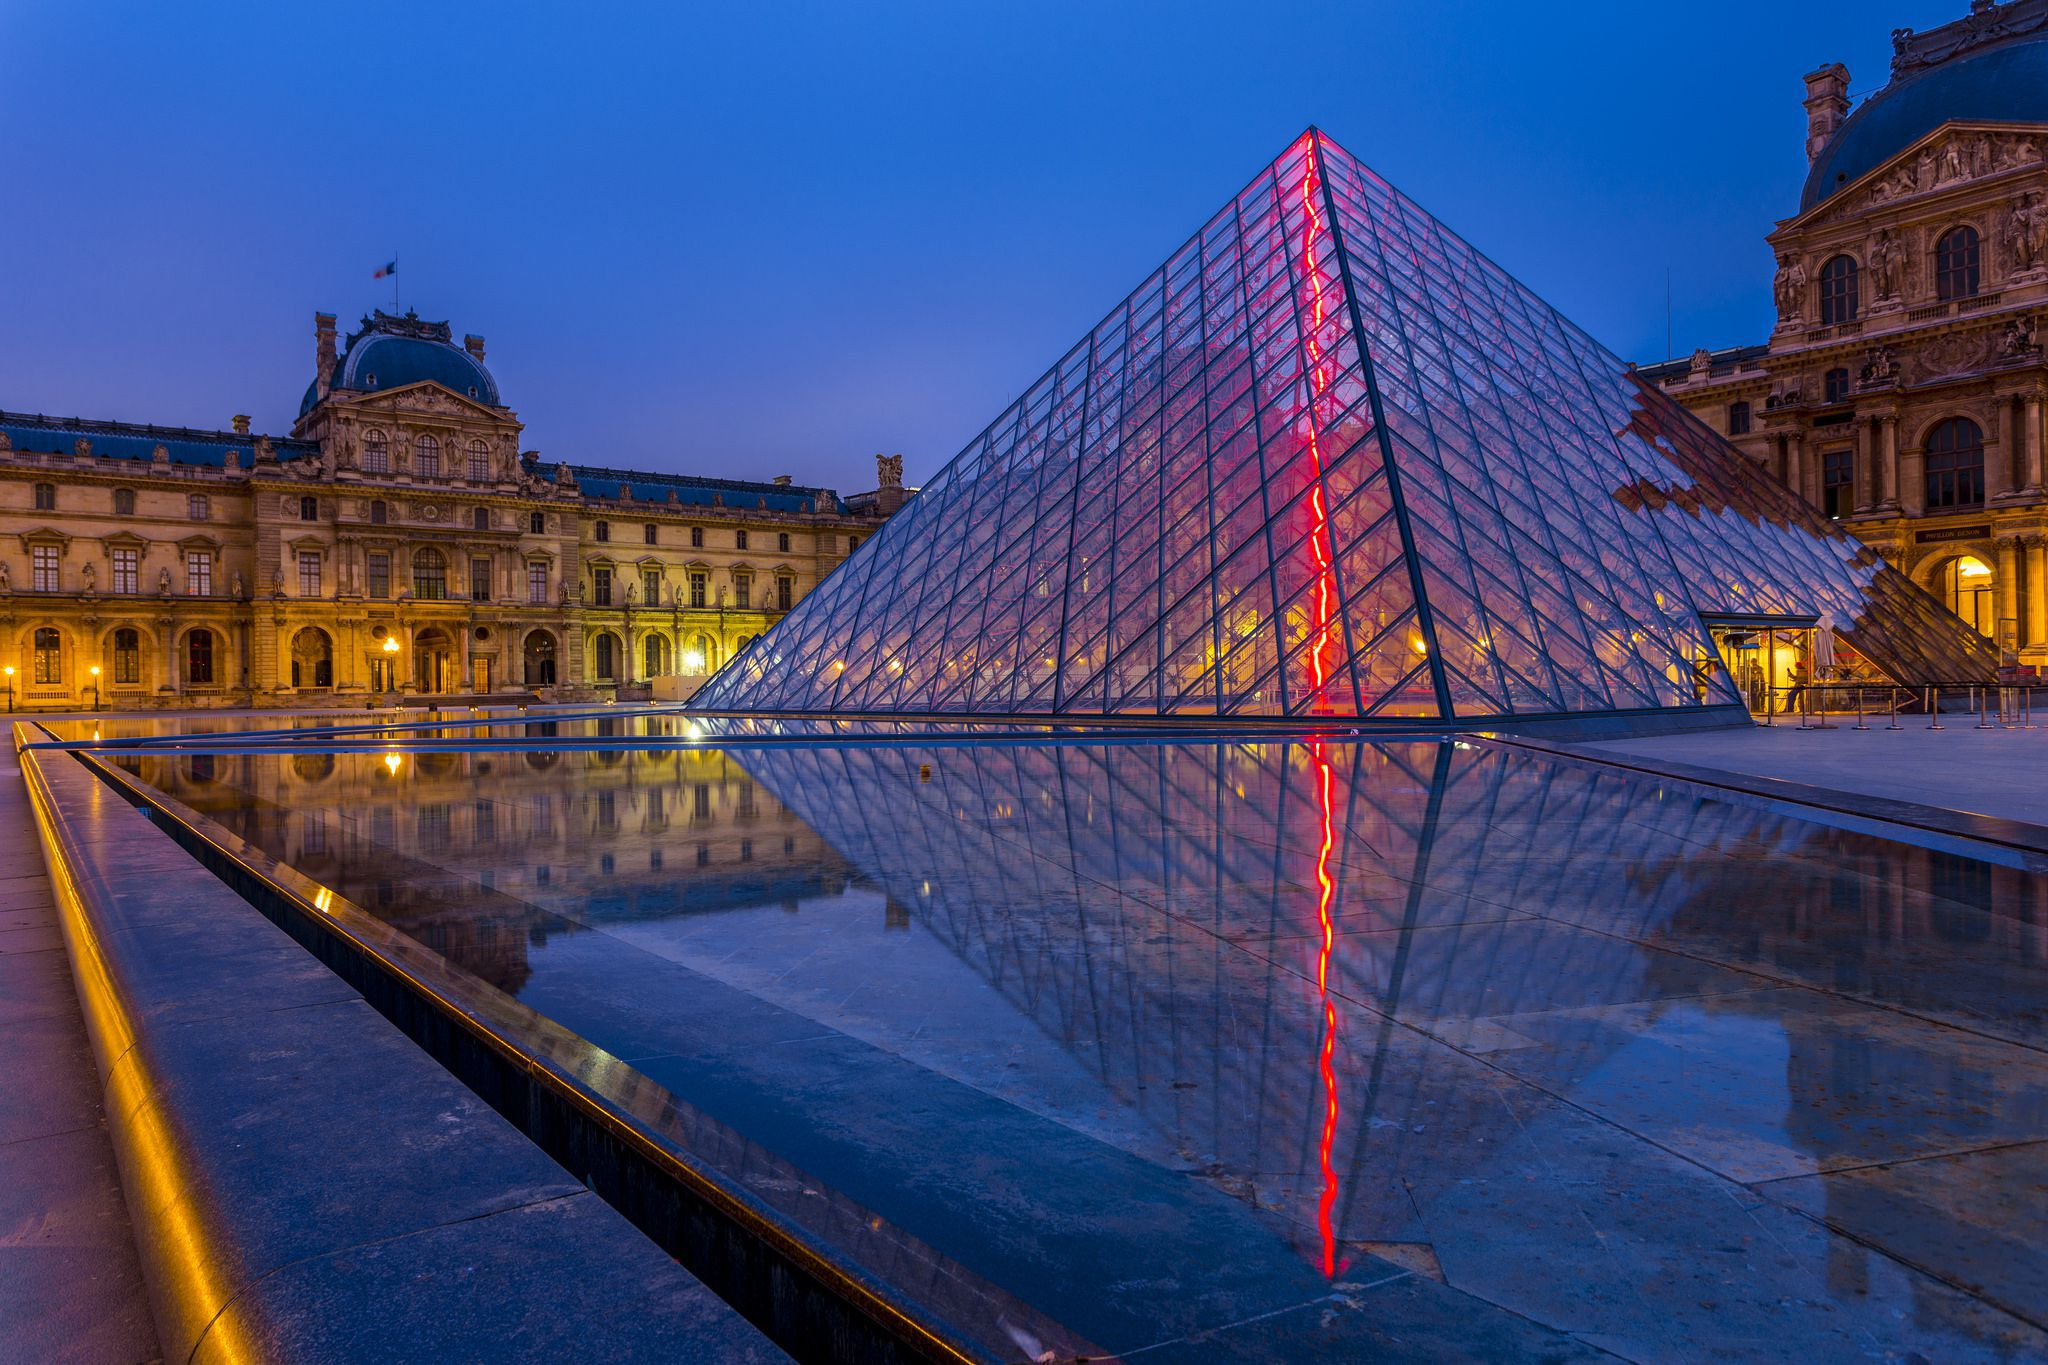 Best 46 Louvre Wallpaper on HipWallpaper Louvre Wallpaper 2048x1365